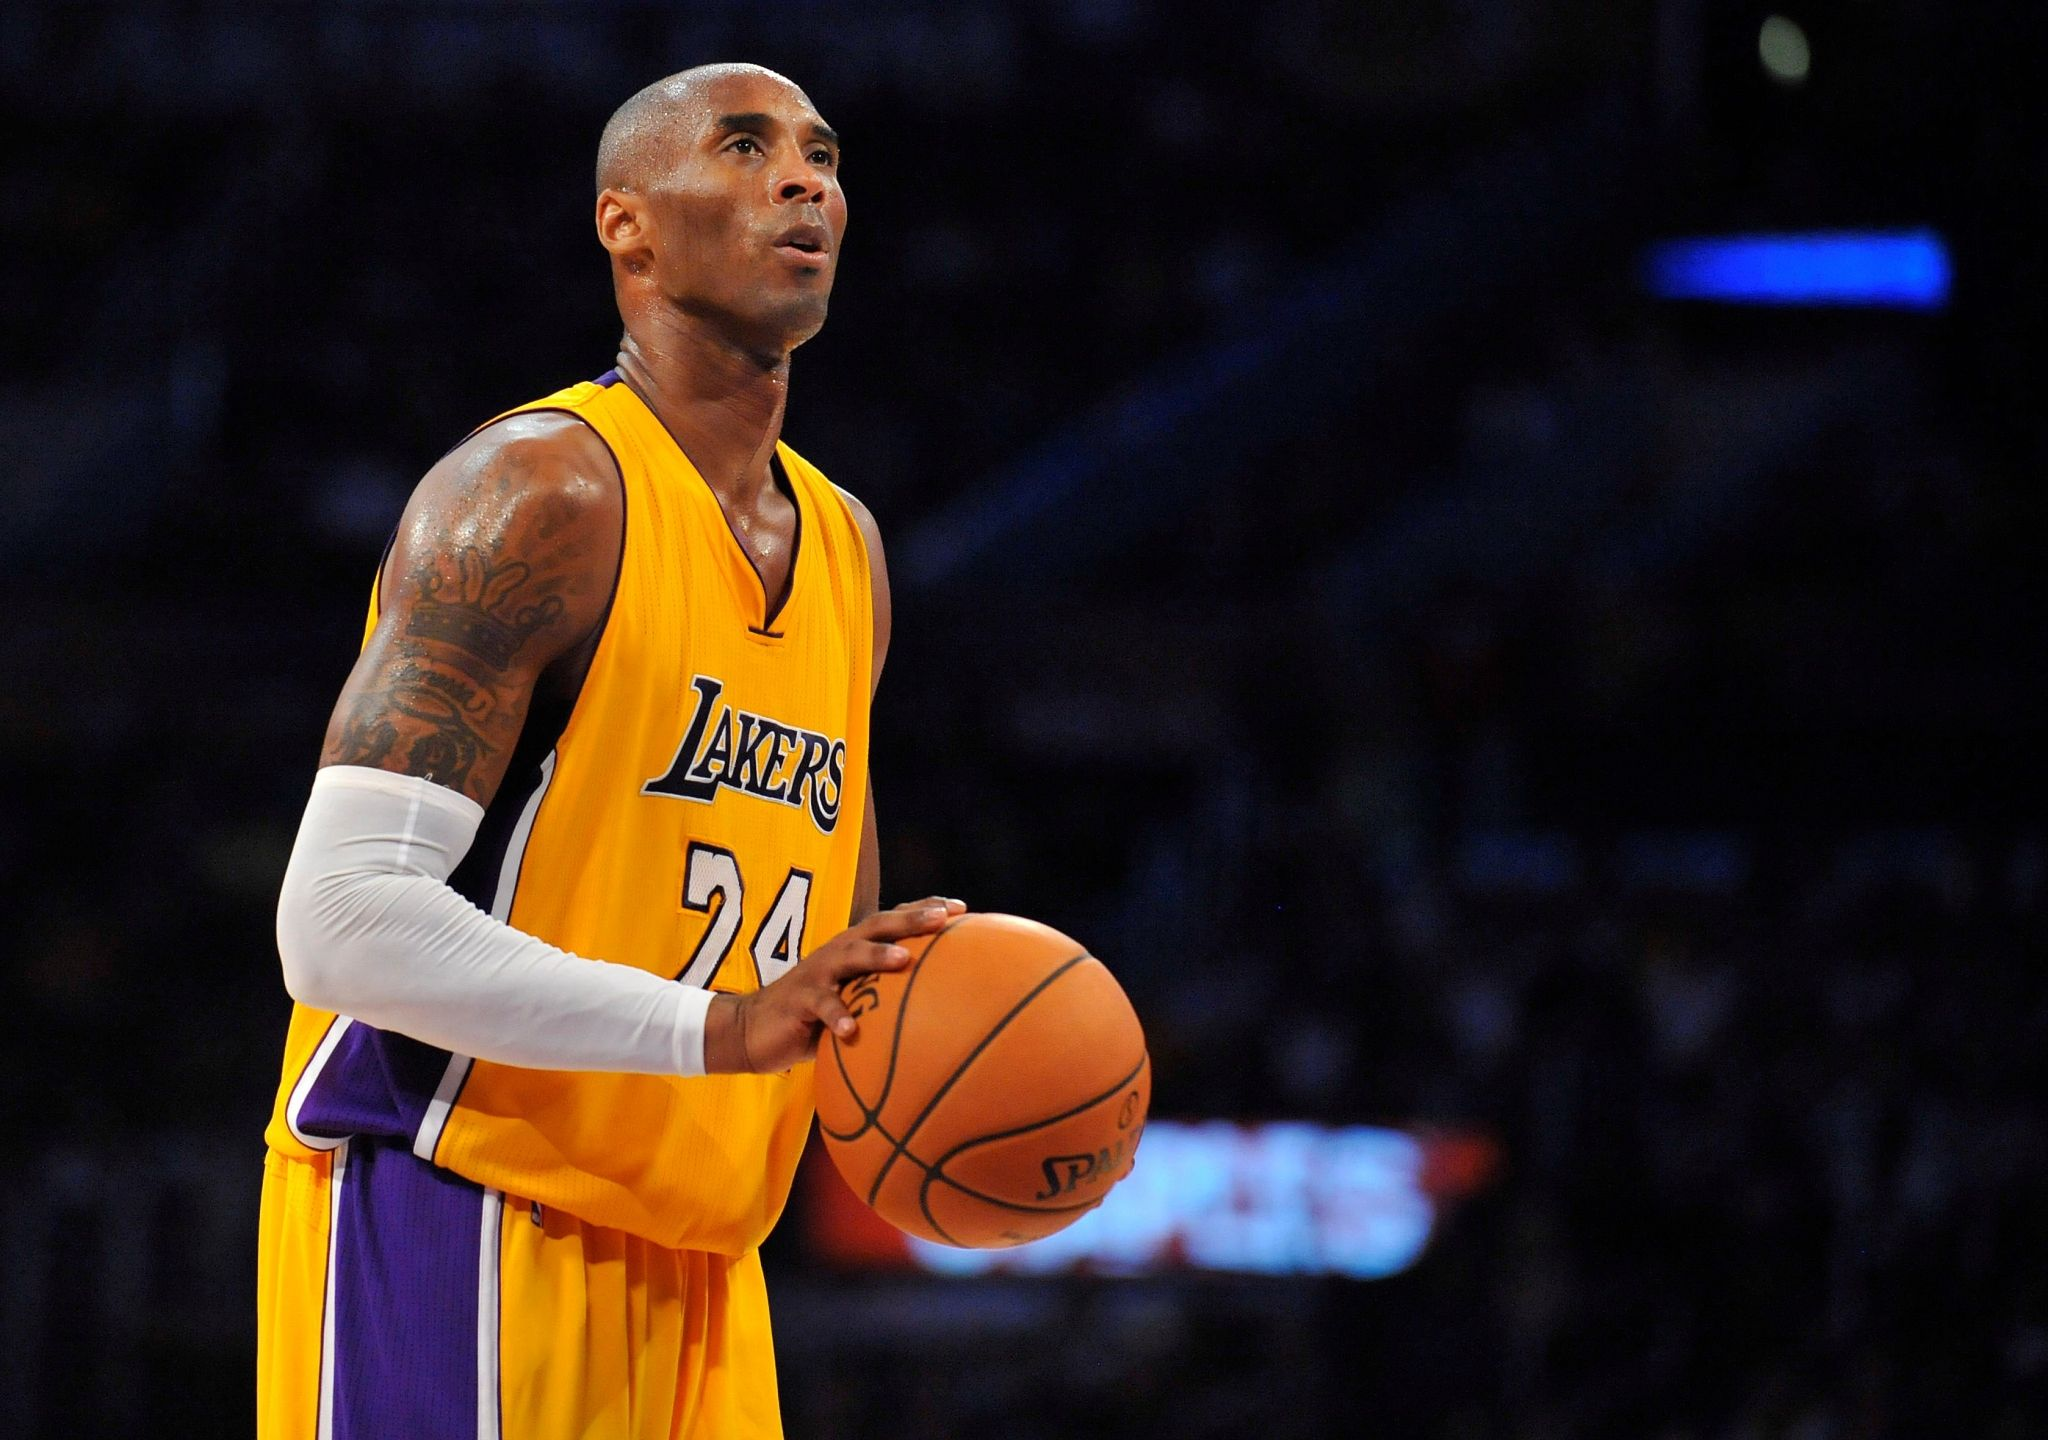 kobe bryant hd widescreen wallpapers Coucher de soleil